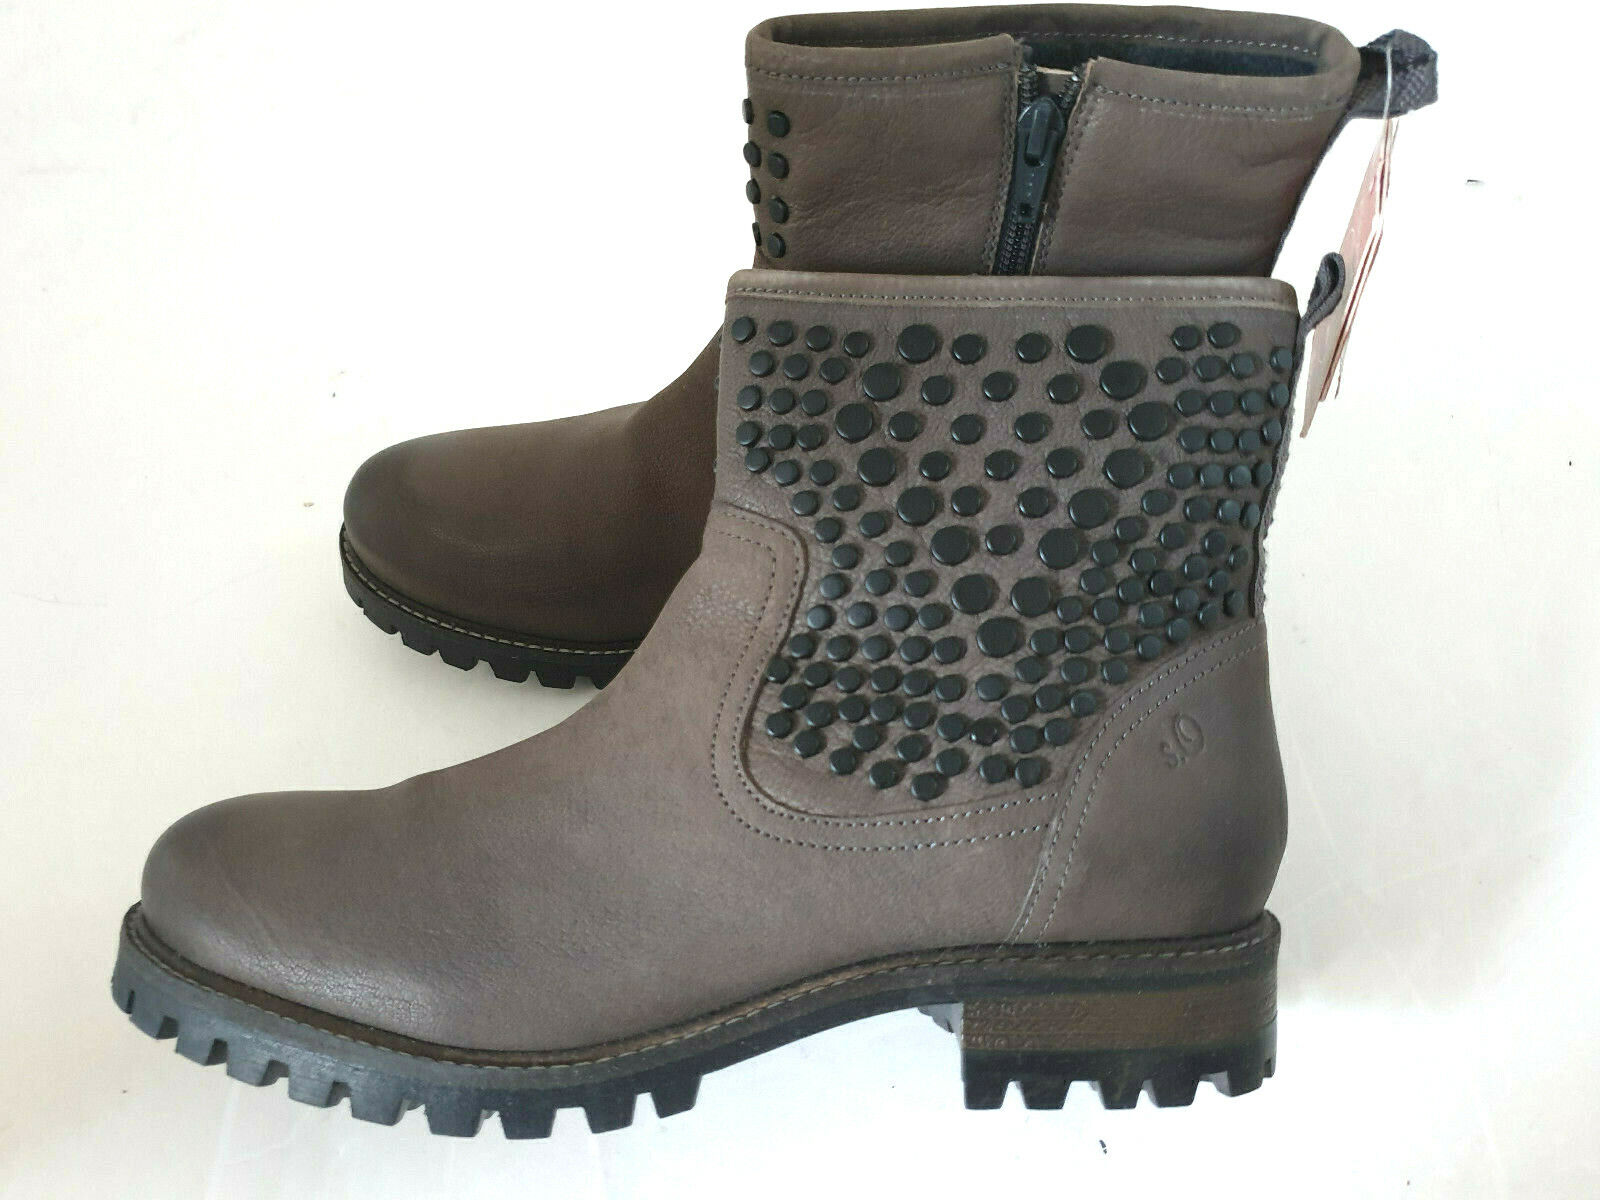 mujer S. Oliver botas Ankle botas Studded Real Leather Talla 40,41